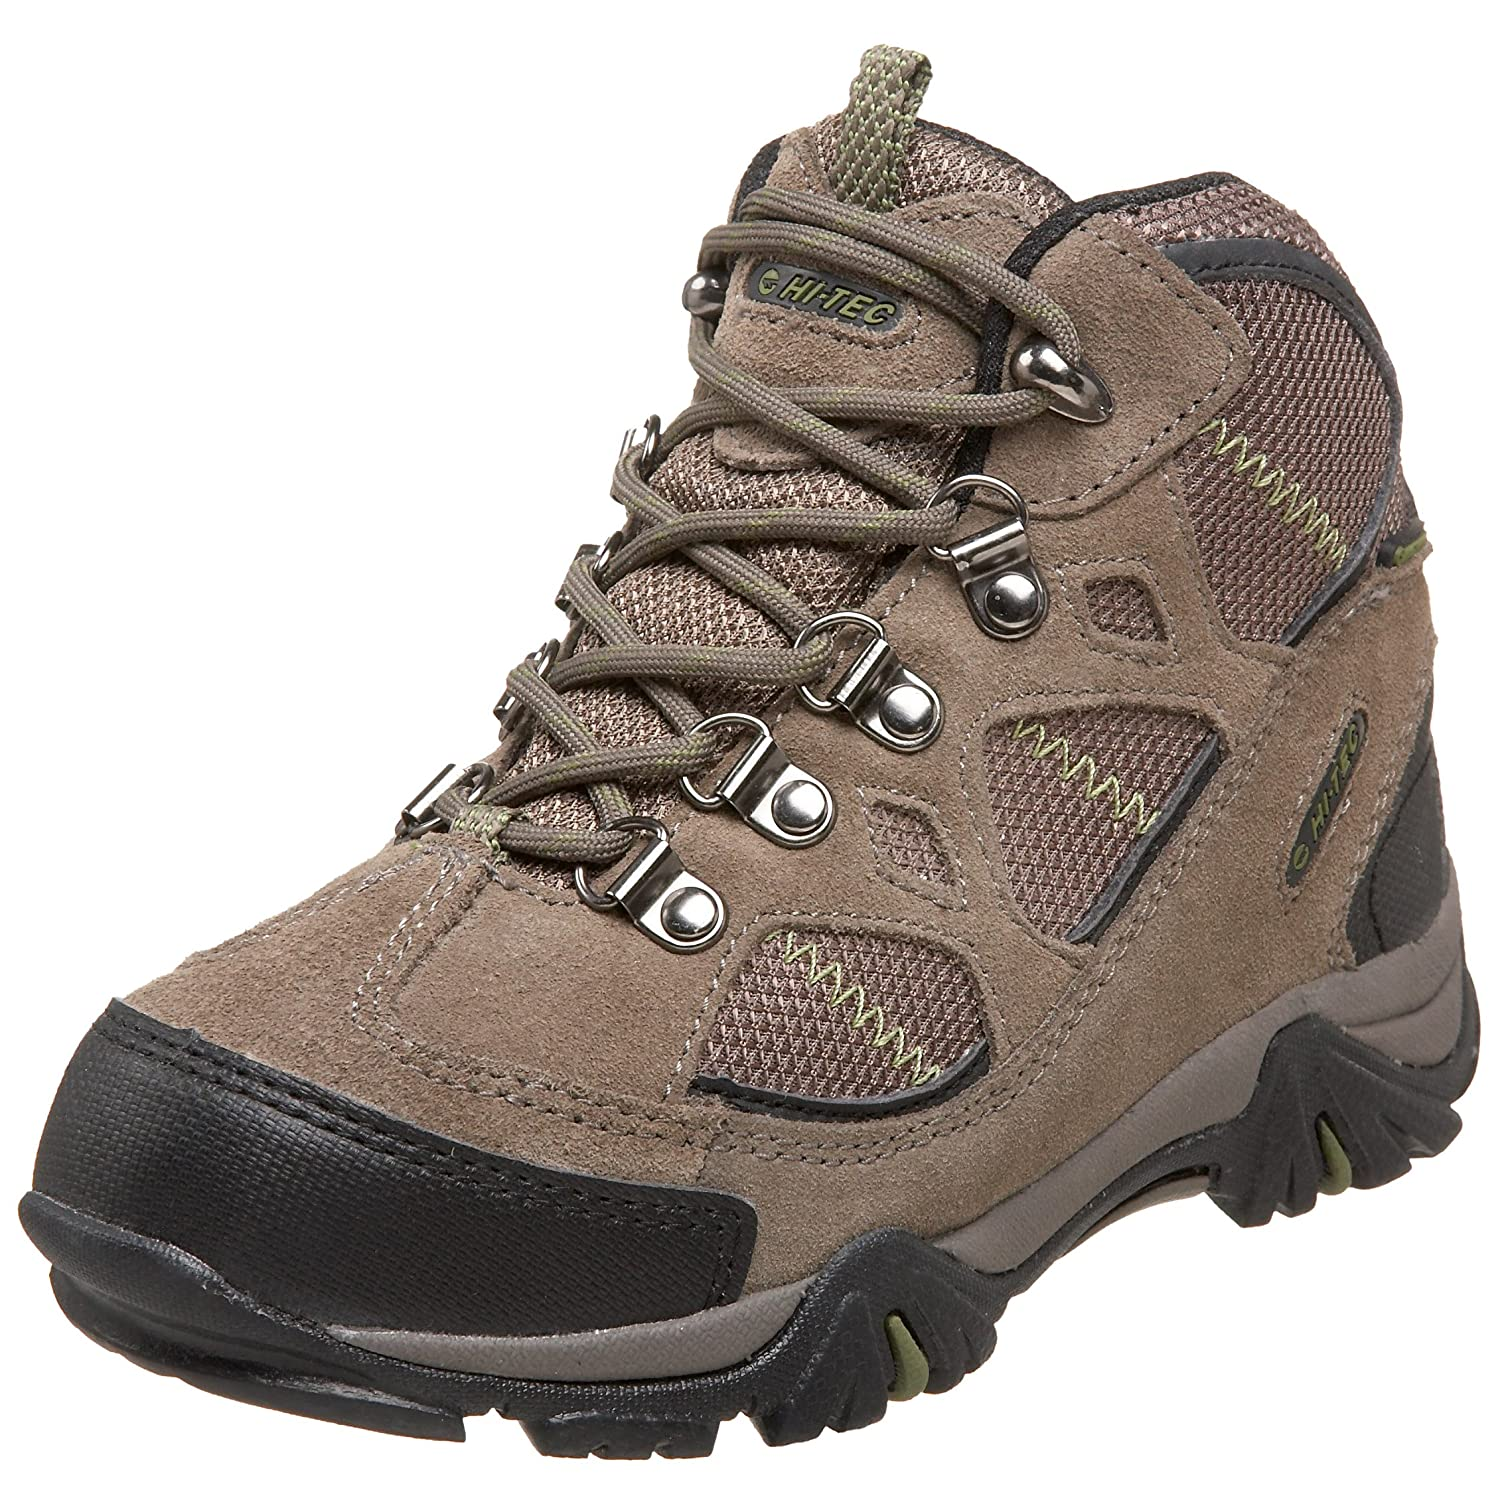 d9af5062558 Amazon.com | Hi-Tec Renegade Trail WP Hiking Boot (Toddler/Little Kid/Big  Kid) | Hiking Boots